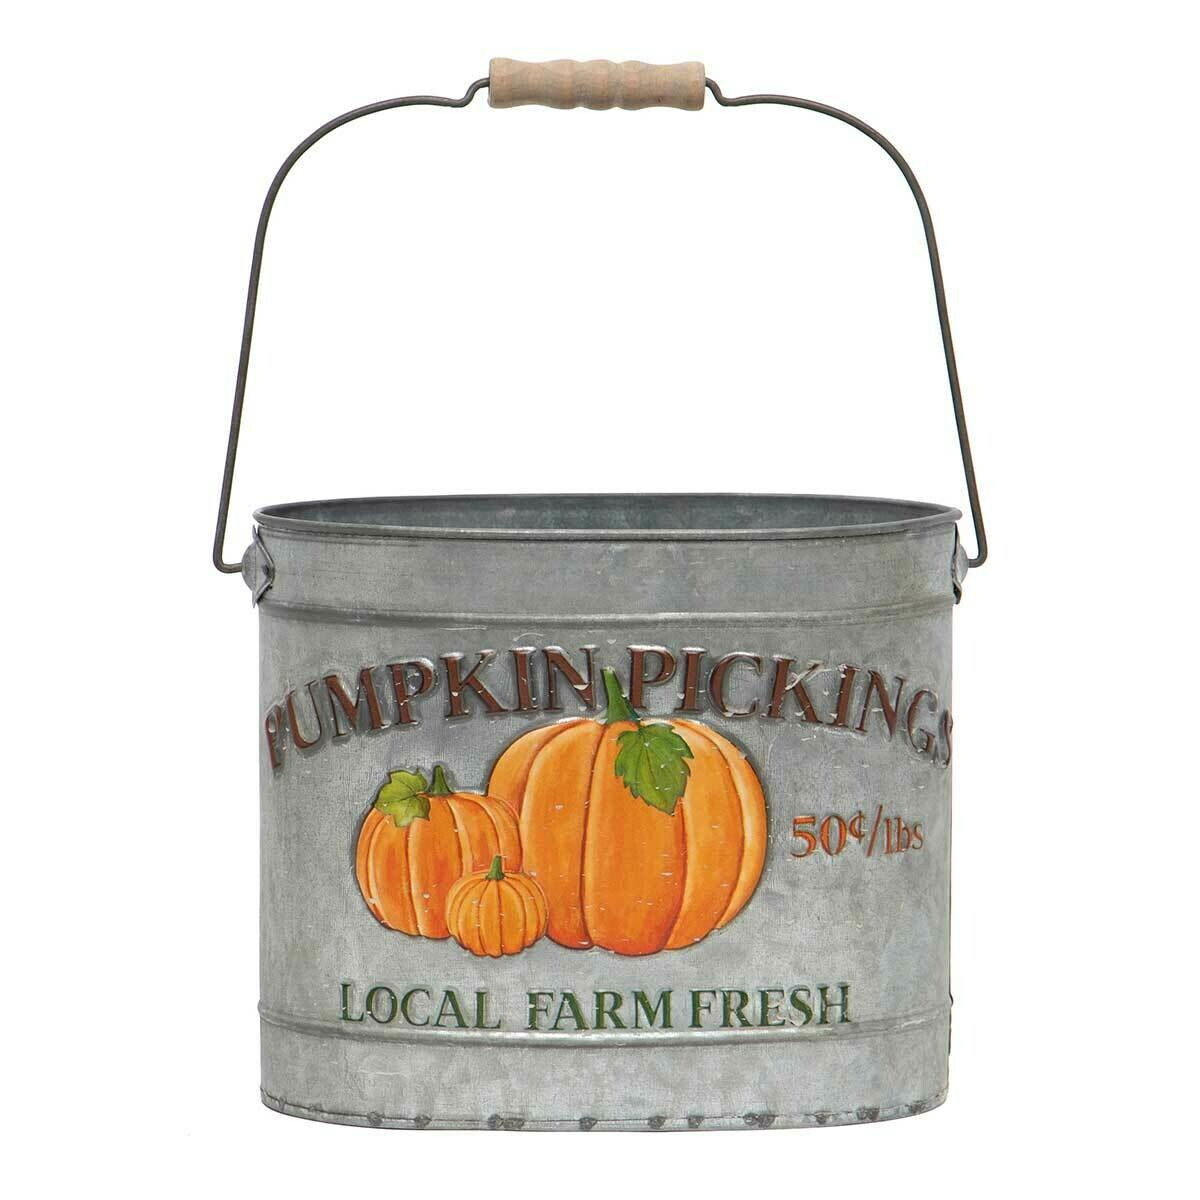 Pumpkin Picking Pail